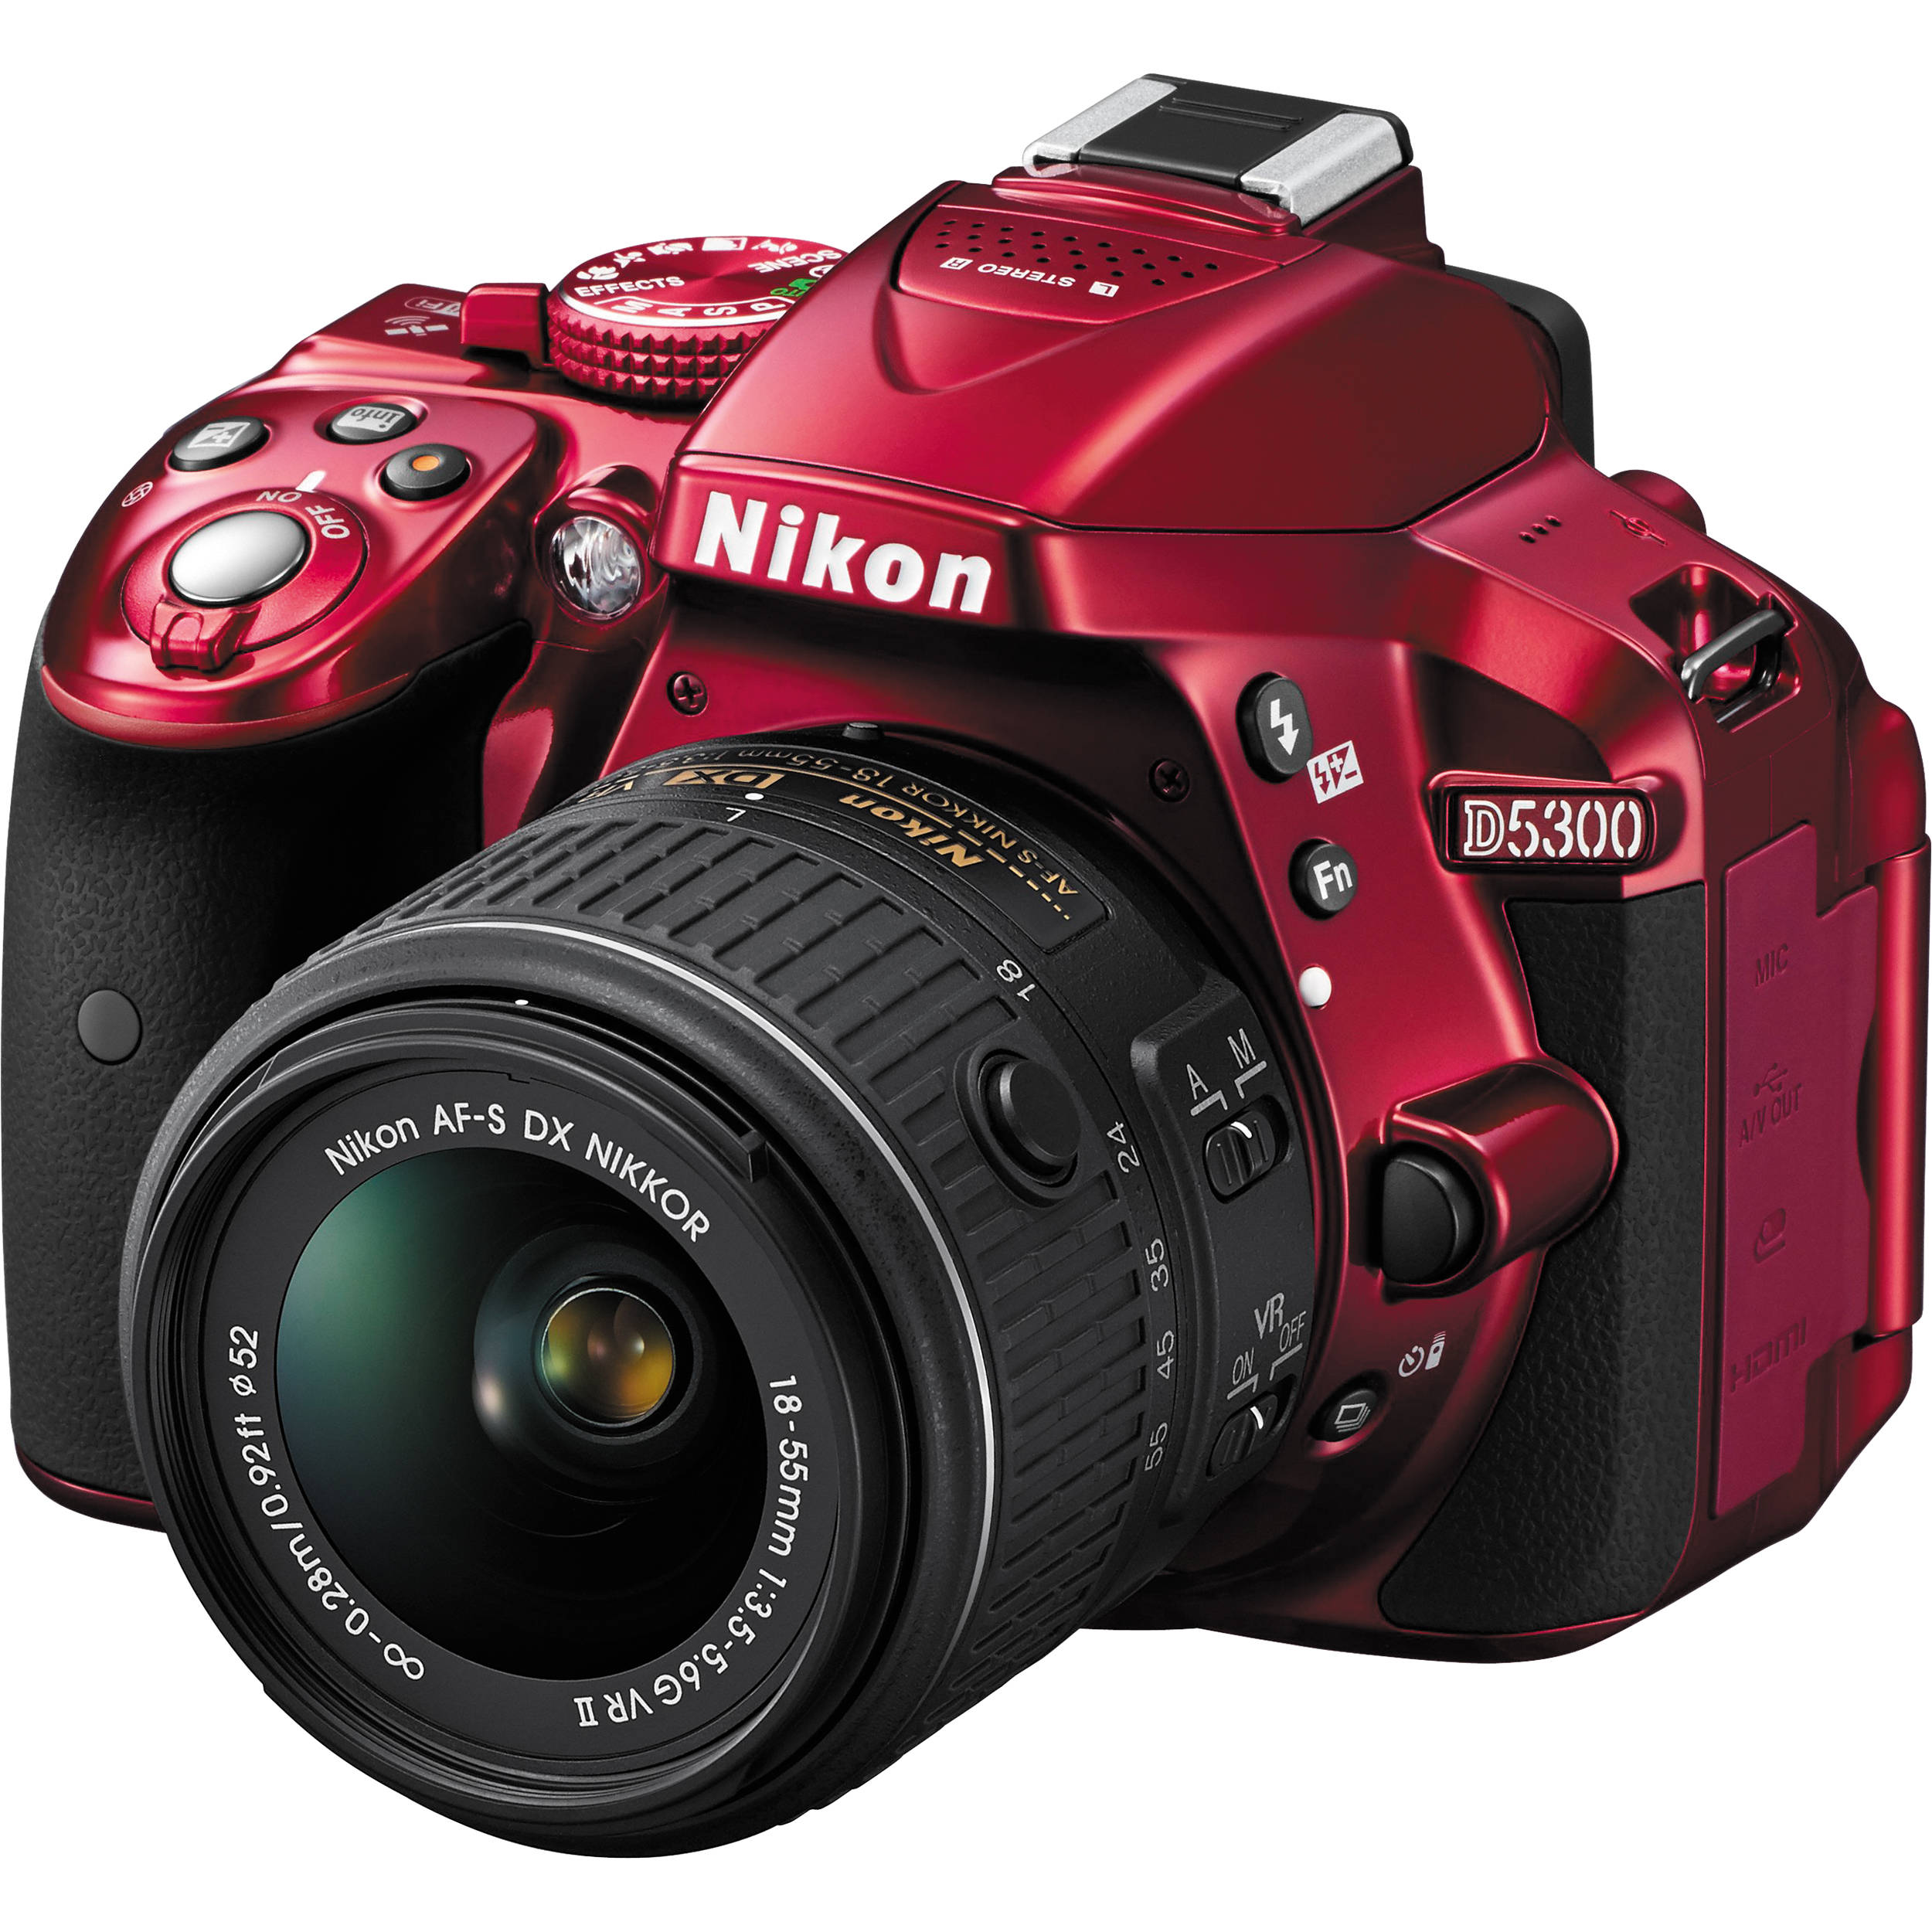 Camera Nikon D5100 Dslr Camera Review nikon d5300 replacement for d5100 bh photo video dslr camera with 18 55mm lens red